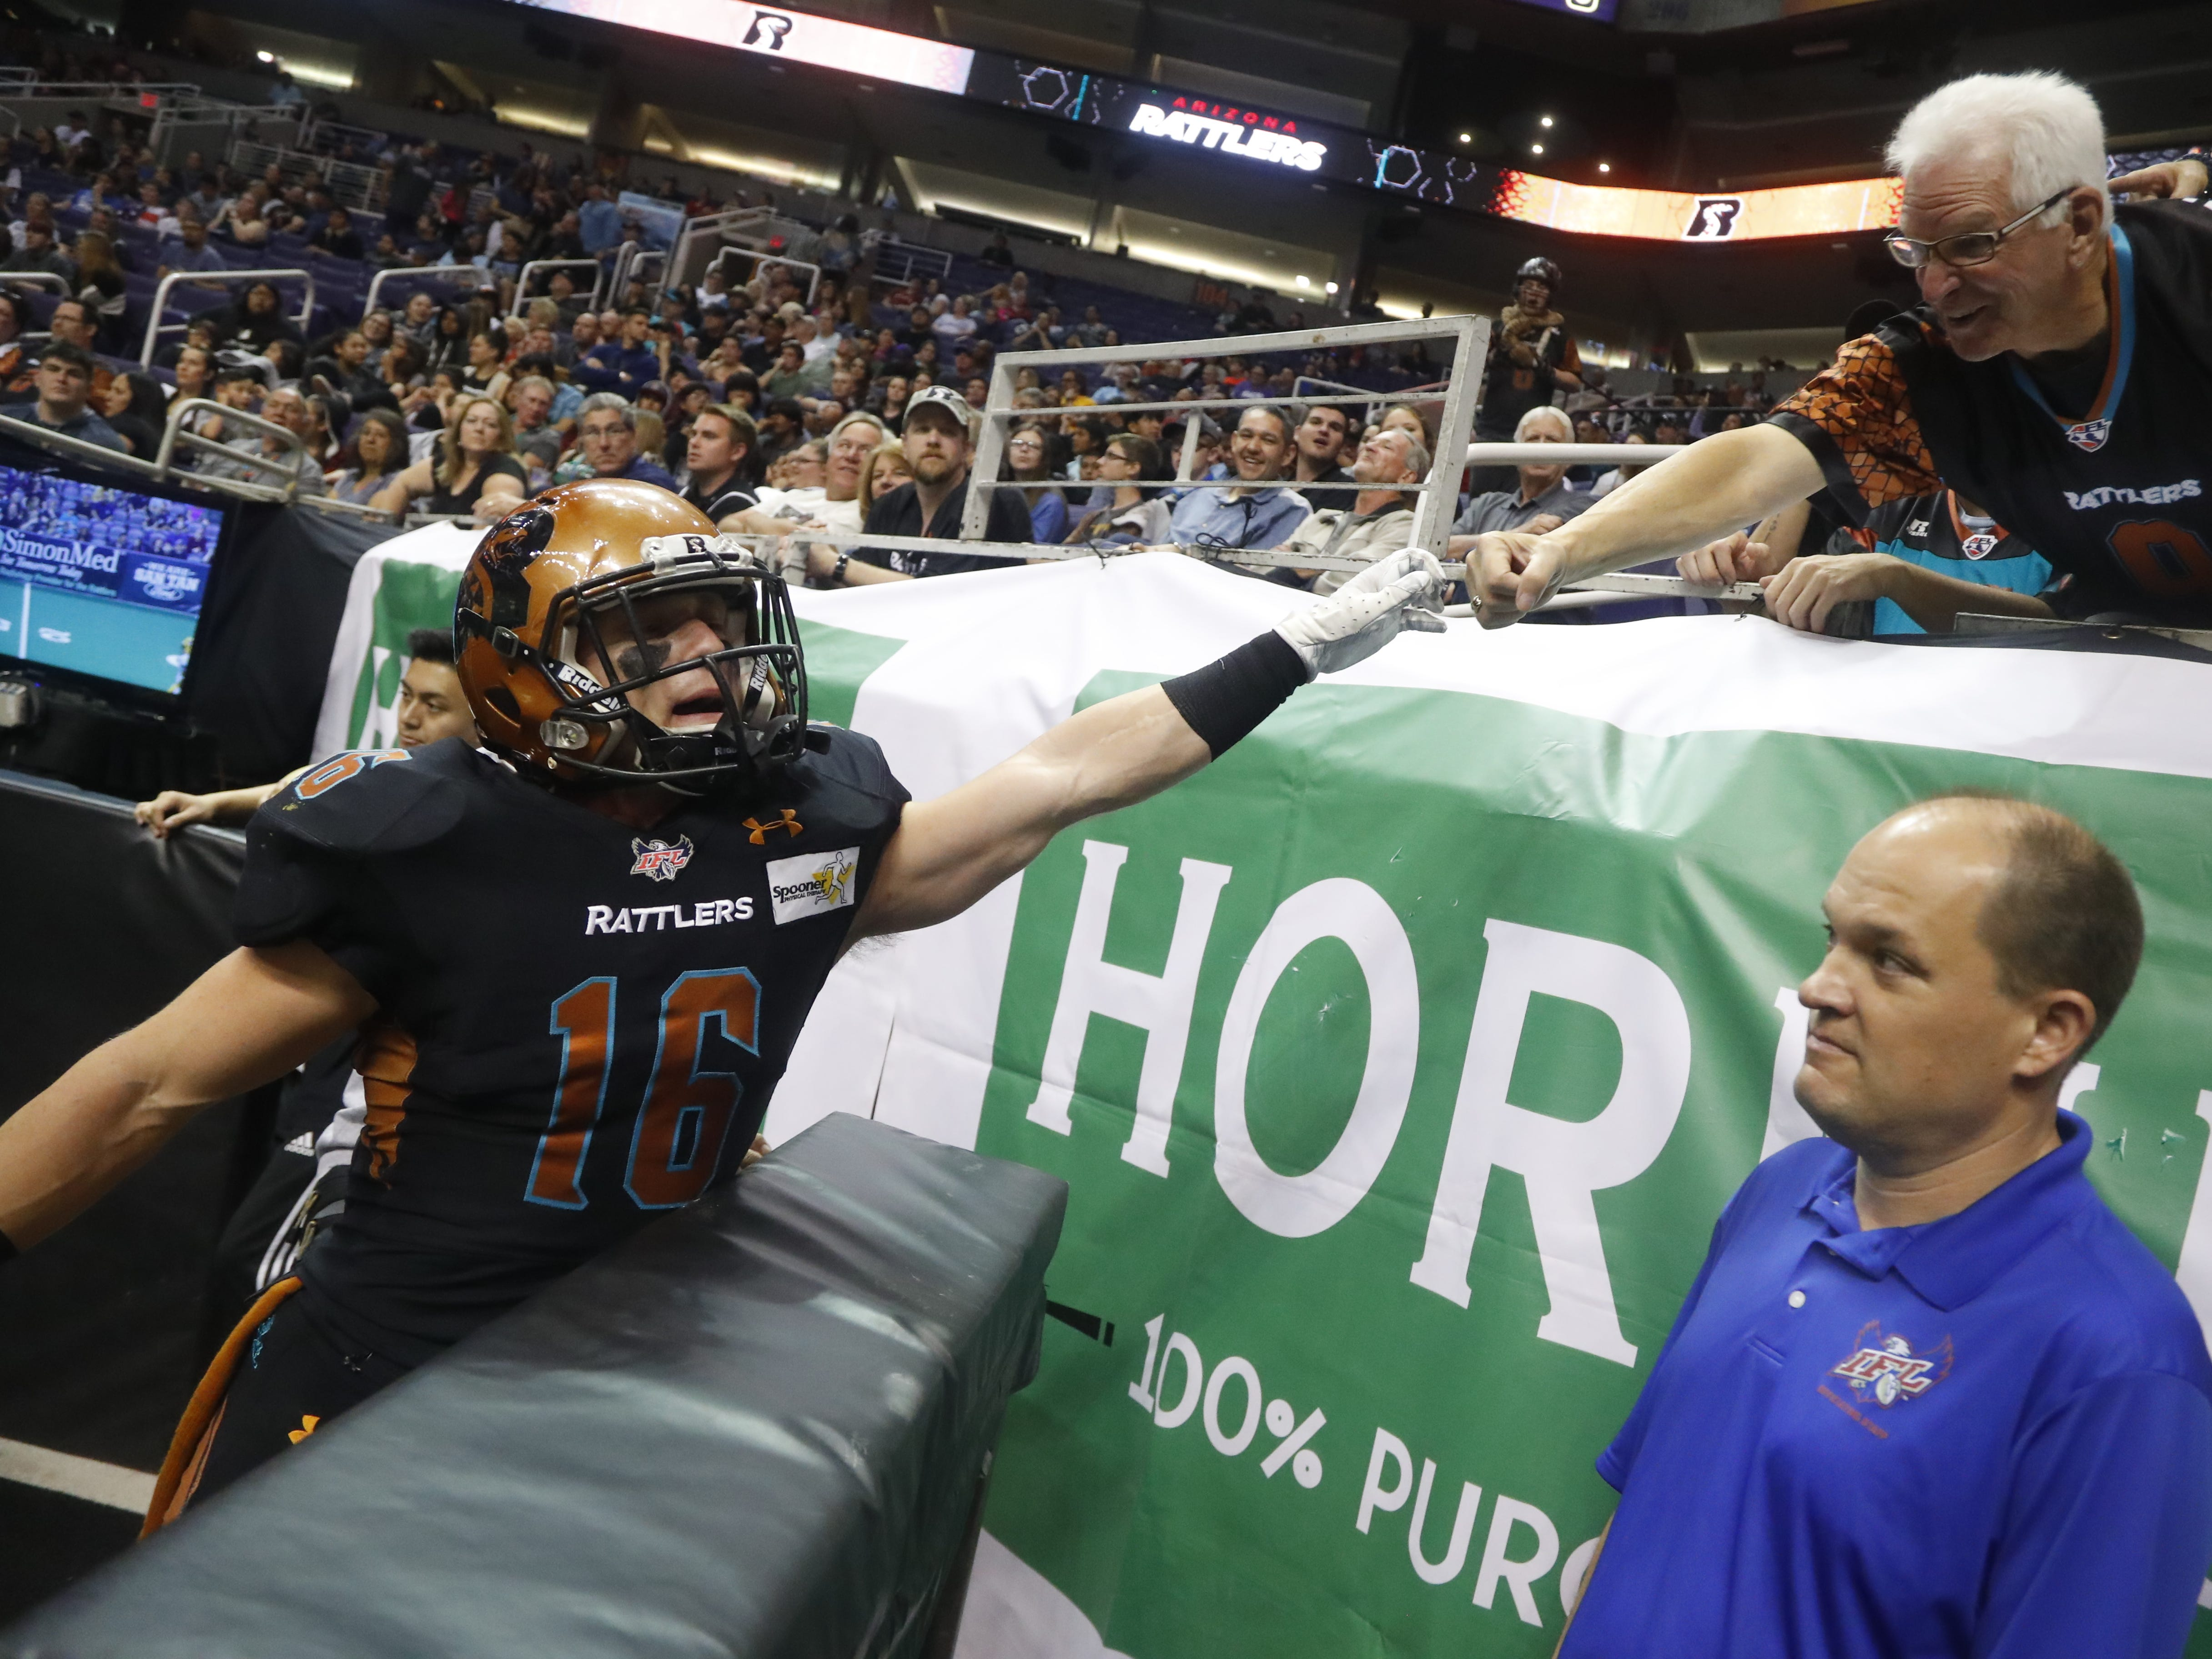 Rattlers' Jarrod Harrington (16) fist bumps a fan during the second half against the Sugar Skulls at Talking Stick Resort Arena in Phoenix, Ariz. on March 16, 2019.